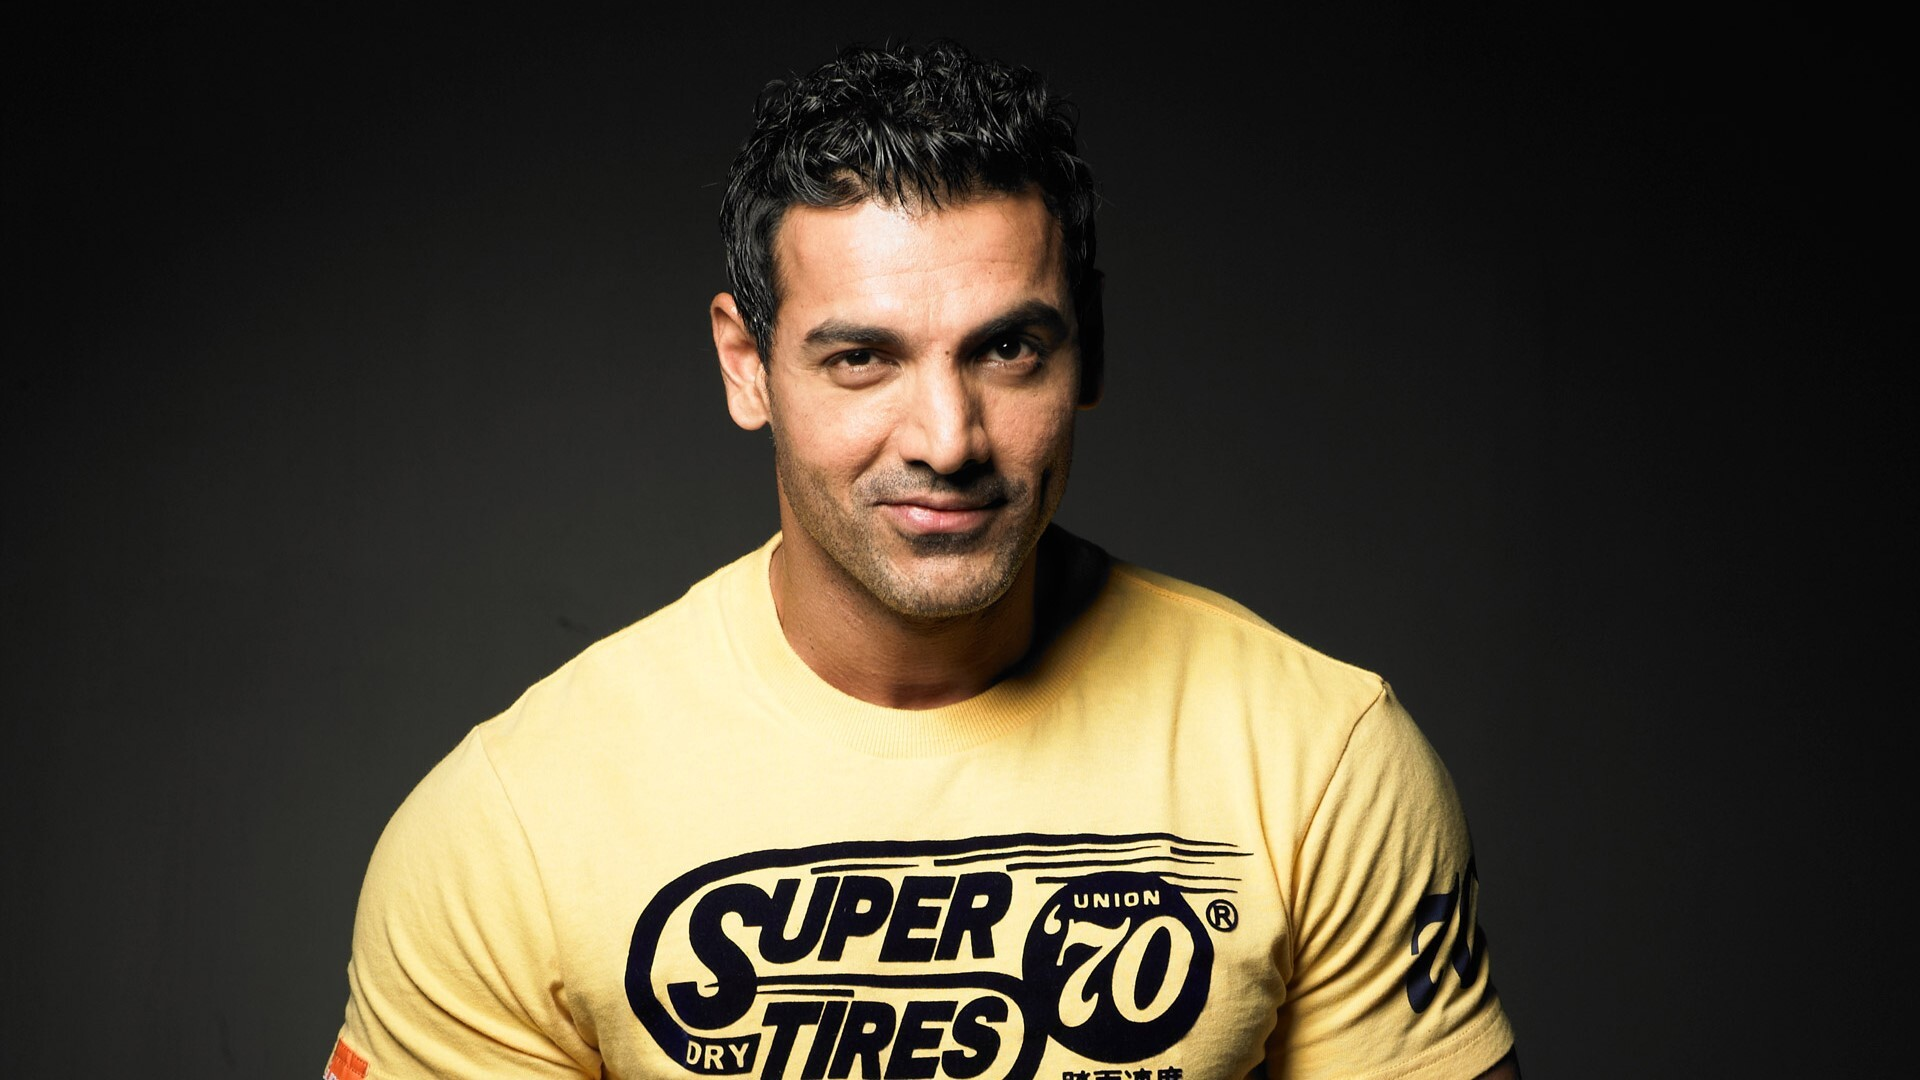 Hd wallpaper john abraham - John Abraham Wallpapers